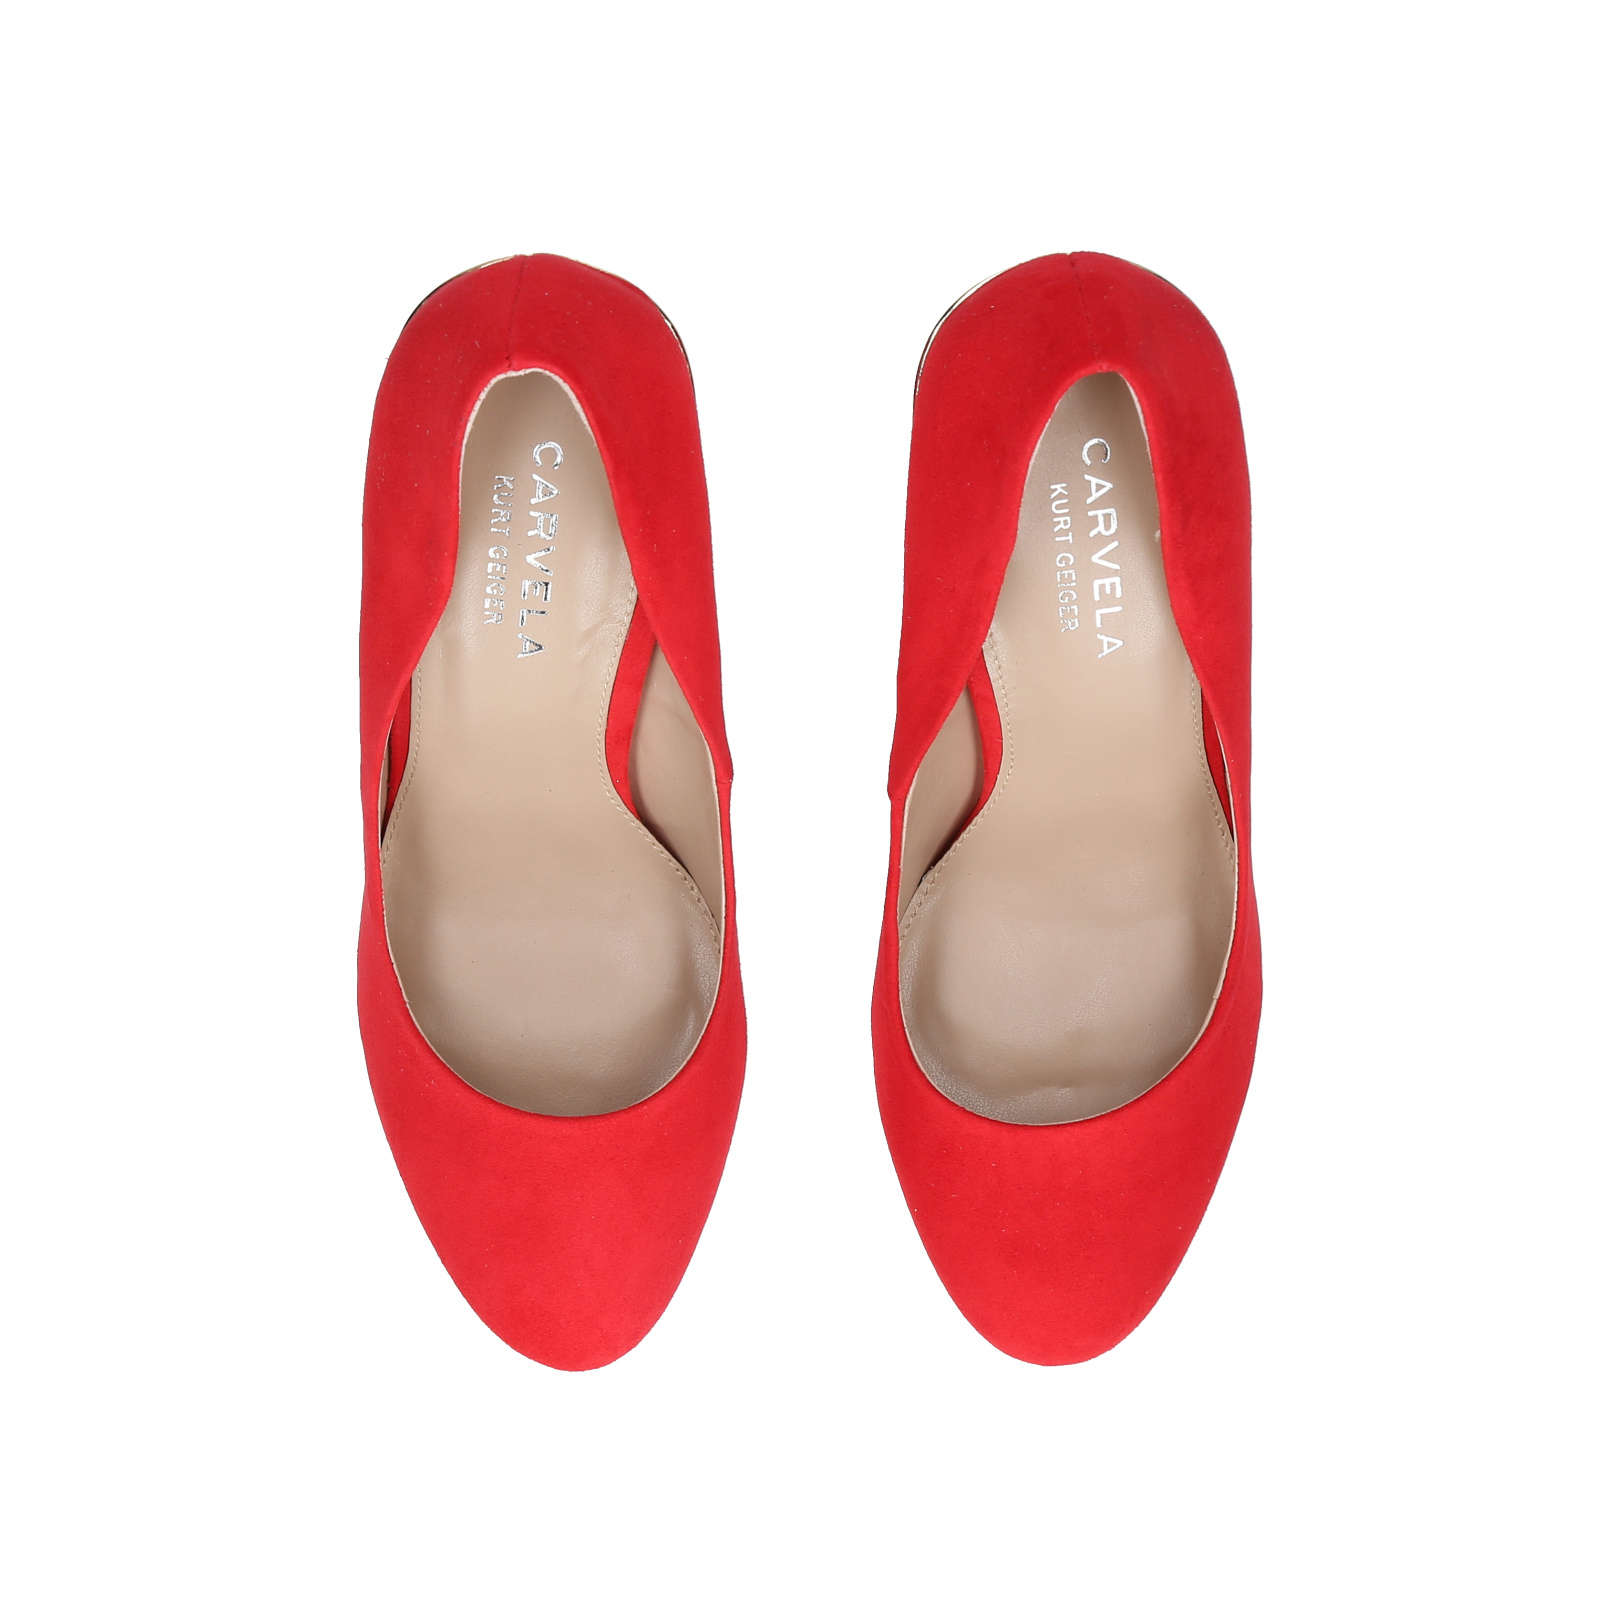 c7511e920ccc KENDRA Carvela Kendra Red High Heel Court Shoes by CARVELA